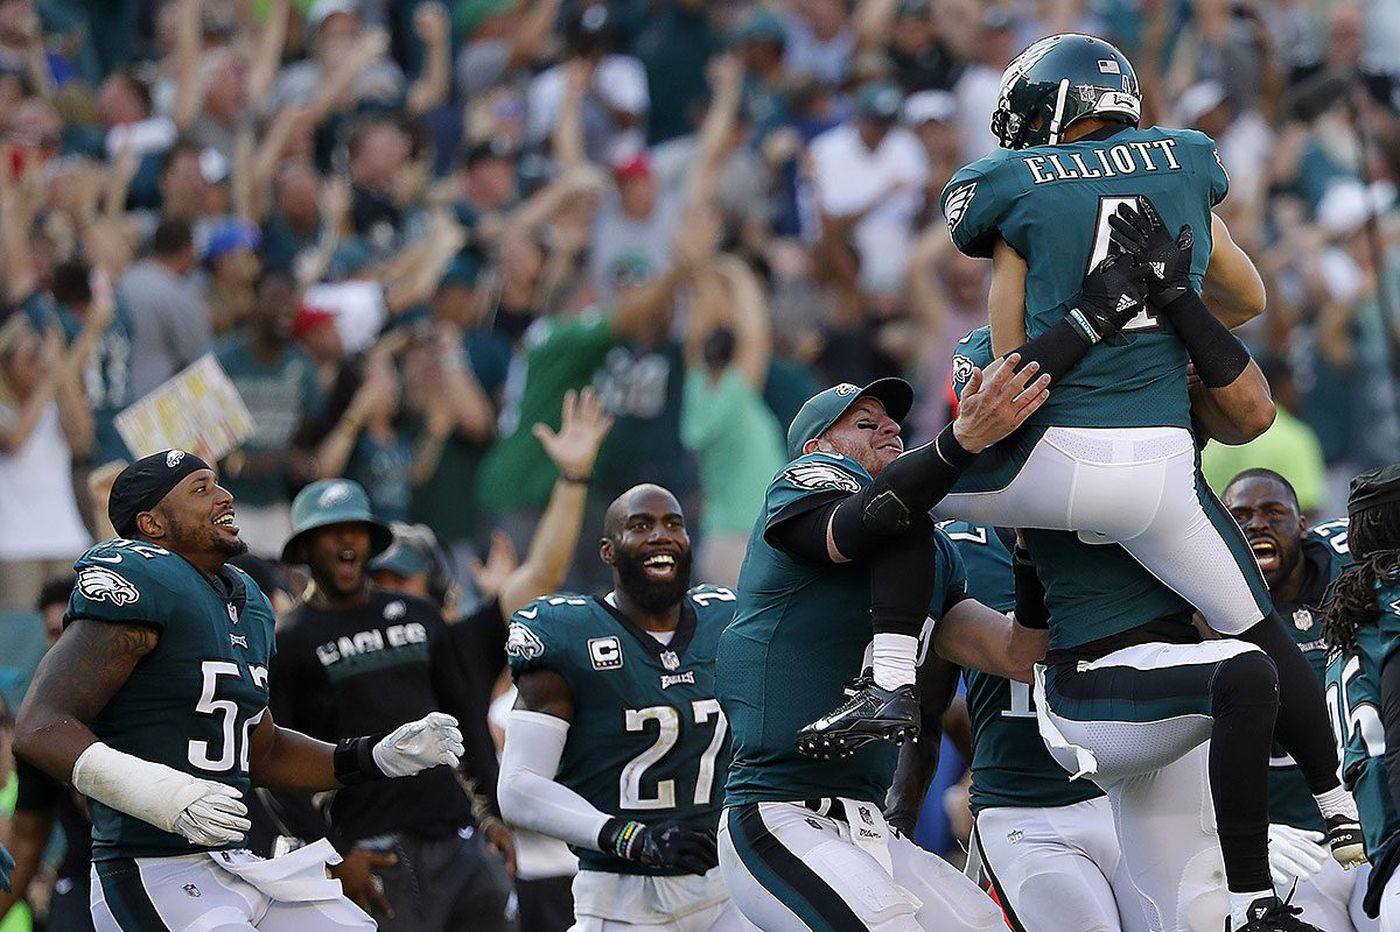 Jake Elliott 61-yard field goal gives Eagles dramatic 27-24 win over Giants